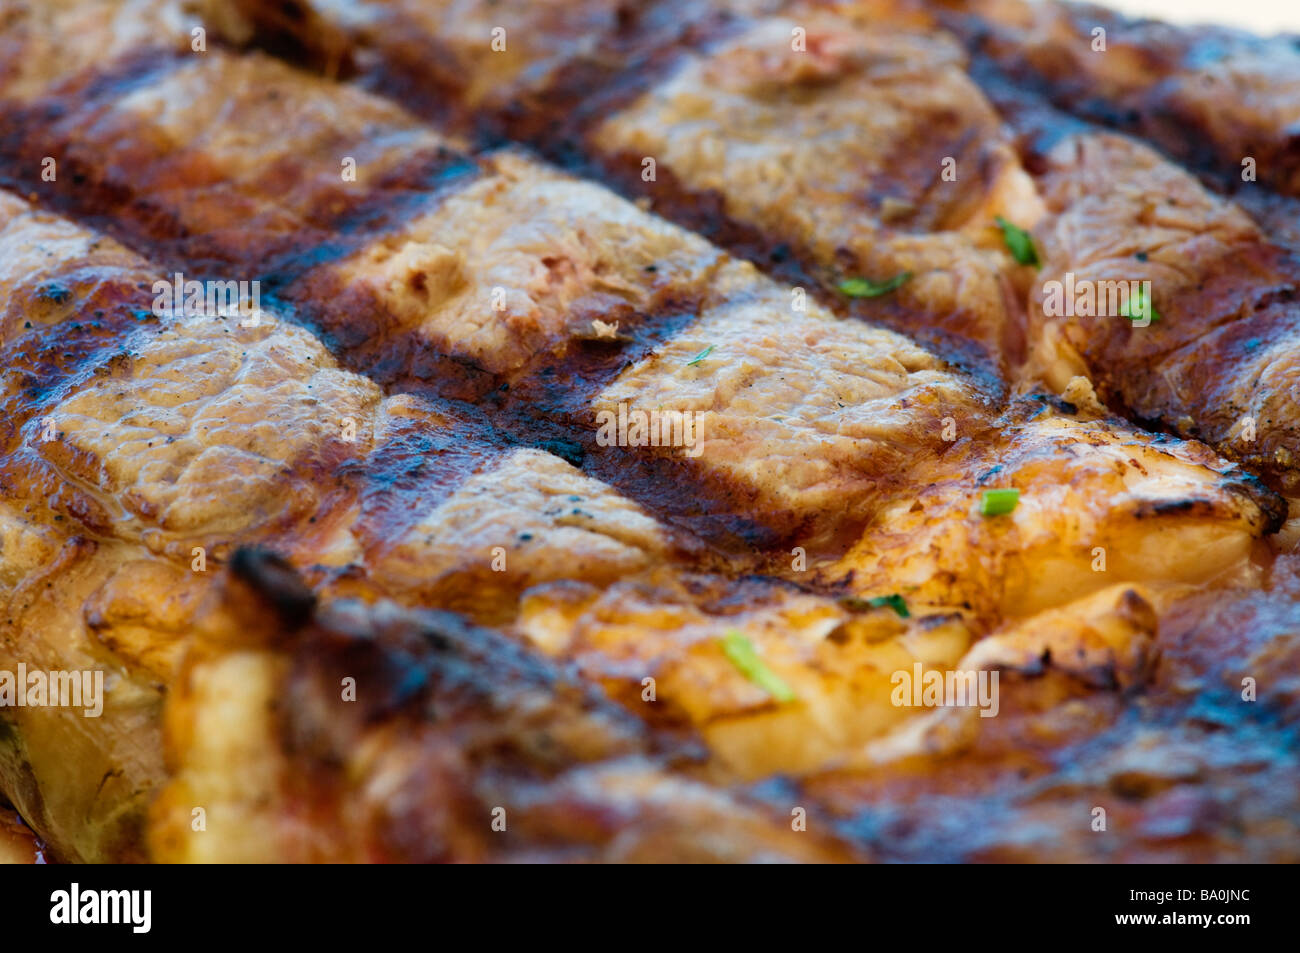 Detail of a prime rib entrecote steak - Stock Image